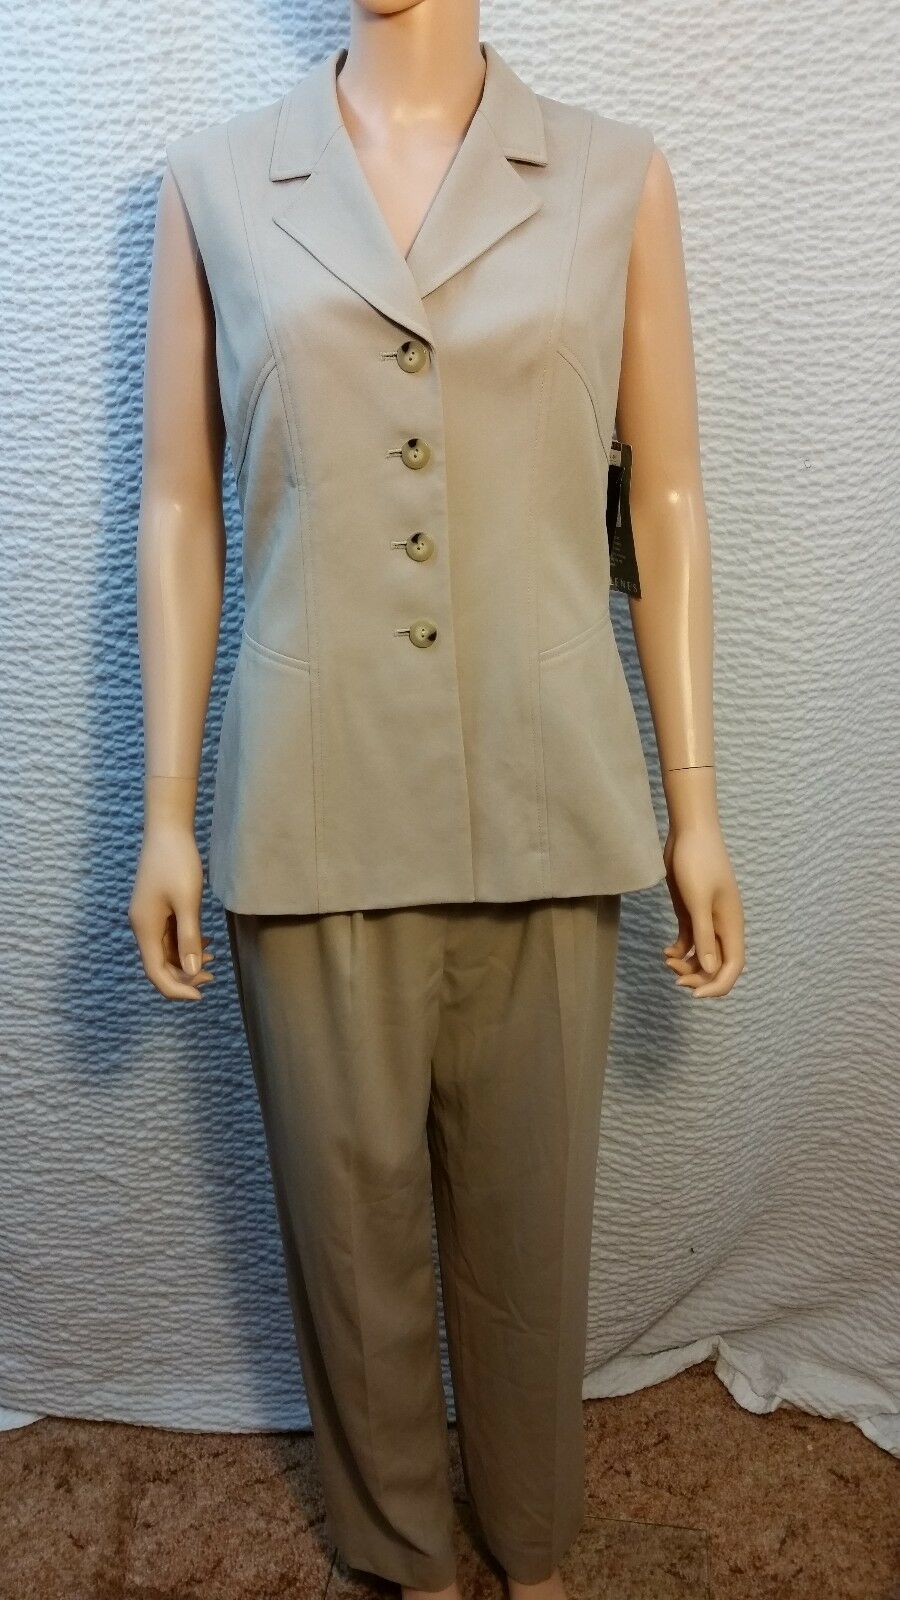 NEW Womens Kasper ASL Tan Beige 2 Piece Sleeveless Pant Suit 8 NWT